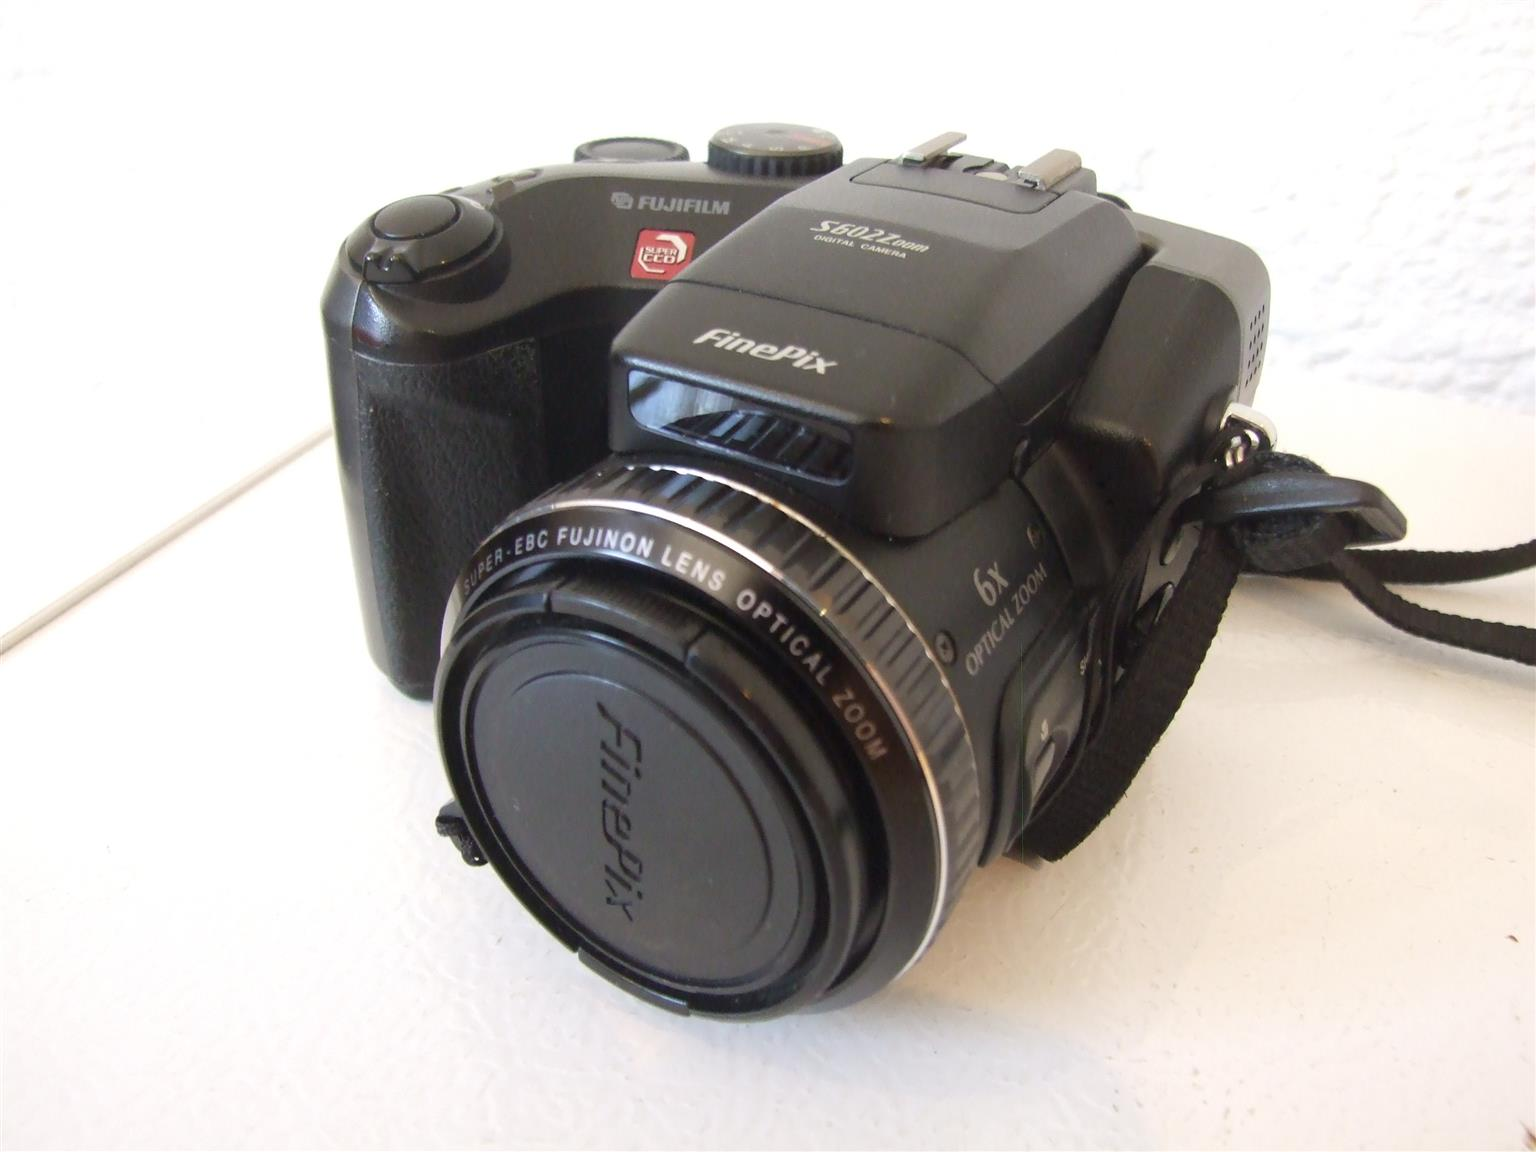 Fujifilm FinePix S602 Zoom with Video mode. Excellent condition. Includes a New Tripod.